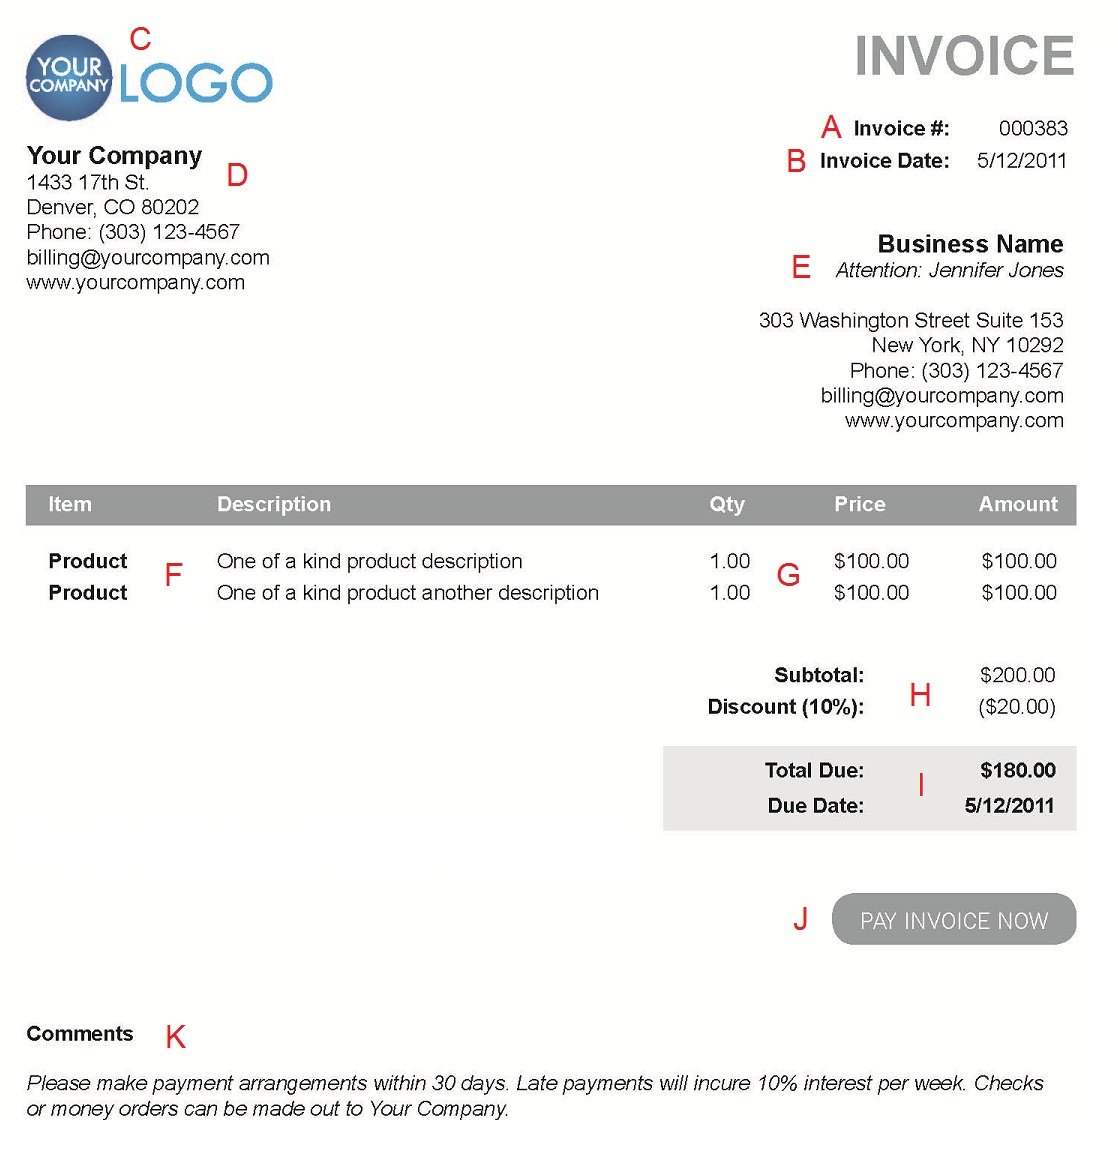 Darkfaderus  Pleasing The  Different Sections Of An Electronic Payment Invoice With Foxy A  With Enchanting Lee County Business Tax Receipt Also Notice Of Acknowledgment Of Receipt In Addition Tax Receipt Organizer And Without Receipt As Well As Receipt Spanish Additionally Goodwill Receipts From Paysimplecom With Darkfaderus  Foxy The  Different Sections Of An Electronic Payment Invoice With Enchanting A  And Pleasing Lee County Business Tax Receipt Also Notice Of Acknowledgment Of Receipt In Addition Tax Receipt Organizer From Paysimplecom